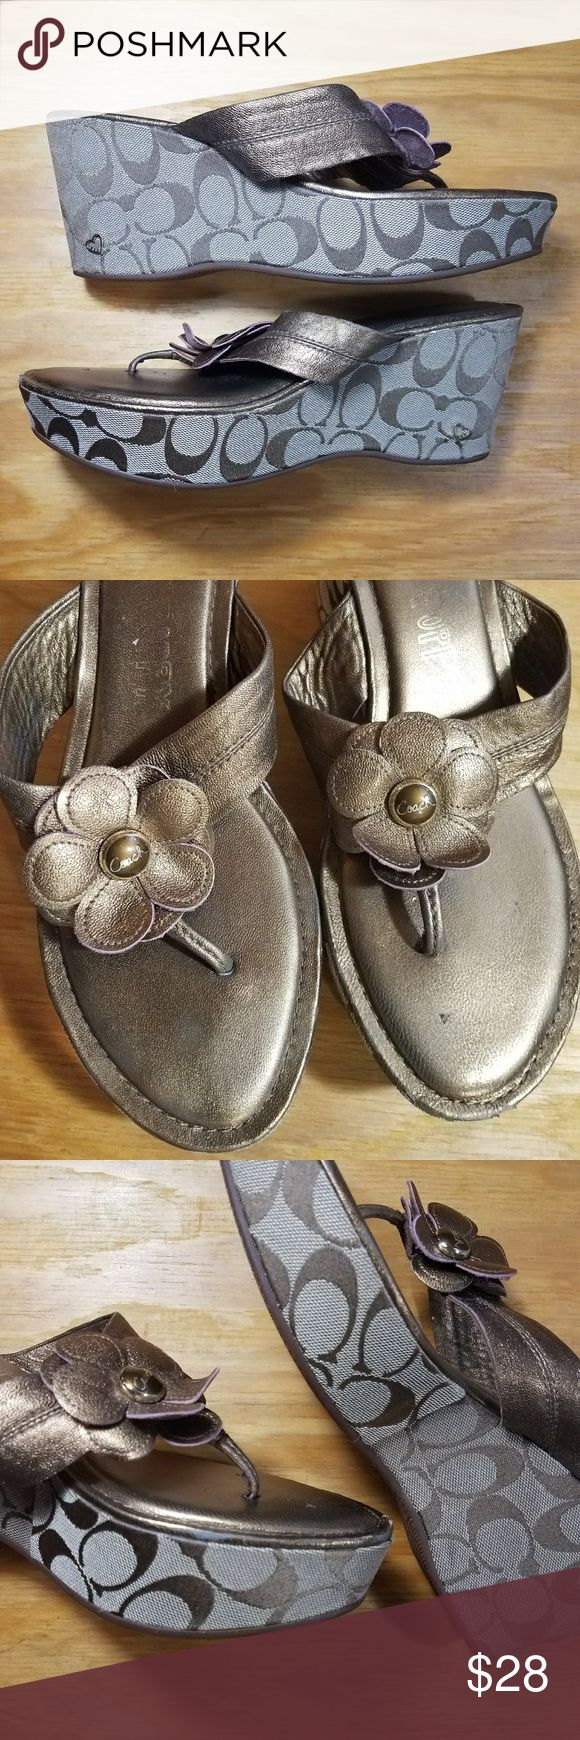 Coach Poppy bronze platform wedge sandals Coach Poppy style A0310 Harley Metallic Kid, bronze platform wedge sandals. Good used condition , have some wear on toes and insoles  **please see all photos for condition**  size 10B Coach Shoes Platforms